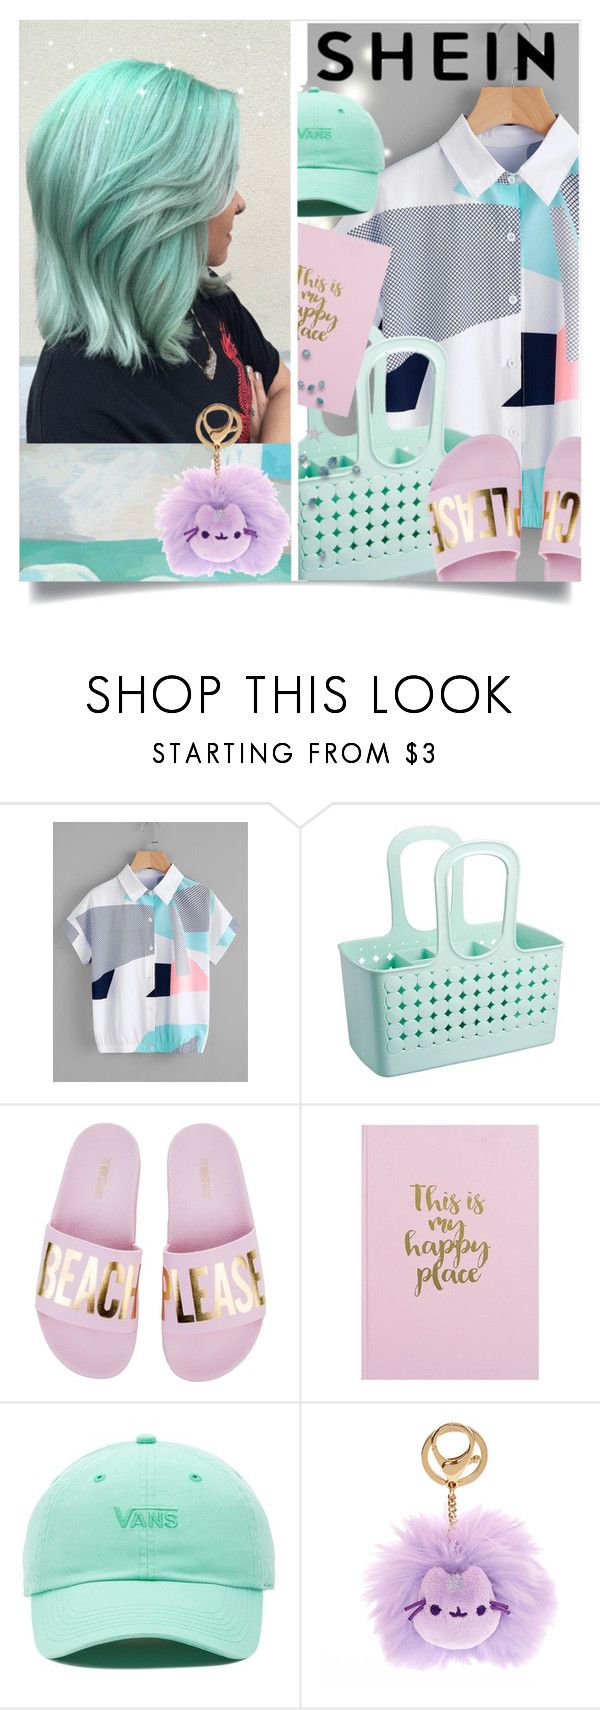 """""""Abstract geo print shirt"""" by design-it-look ❤ liked on Polyvore featuring Vans, JuJu, Pusheen, trend and shein"""